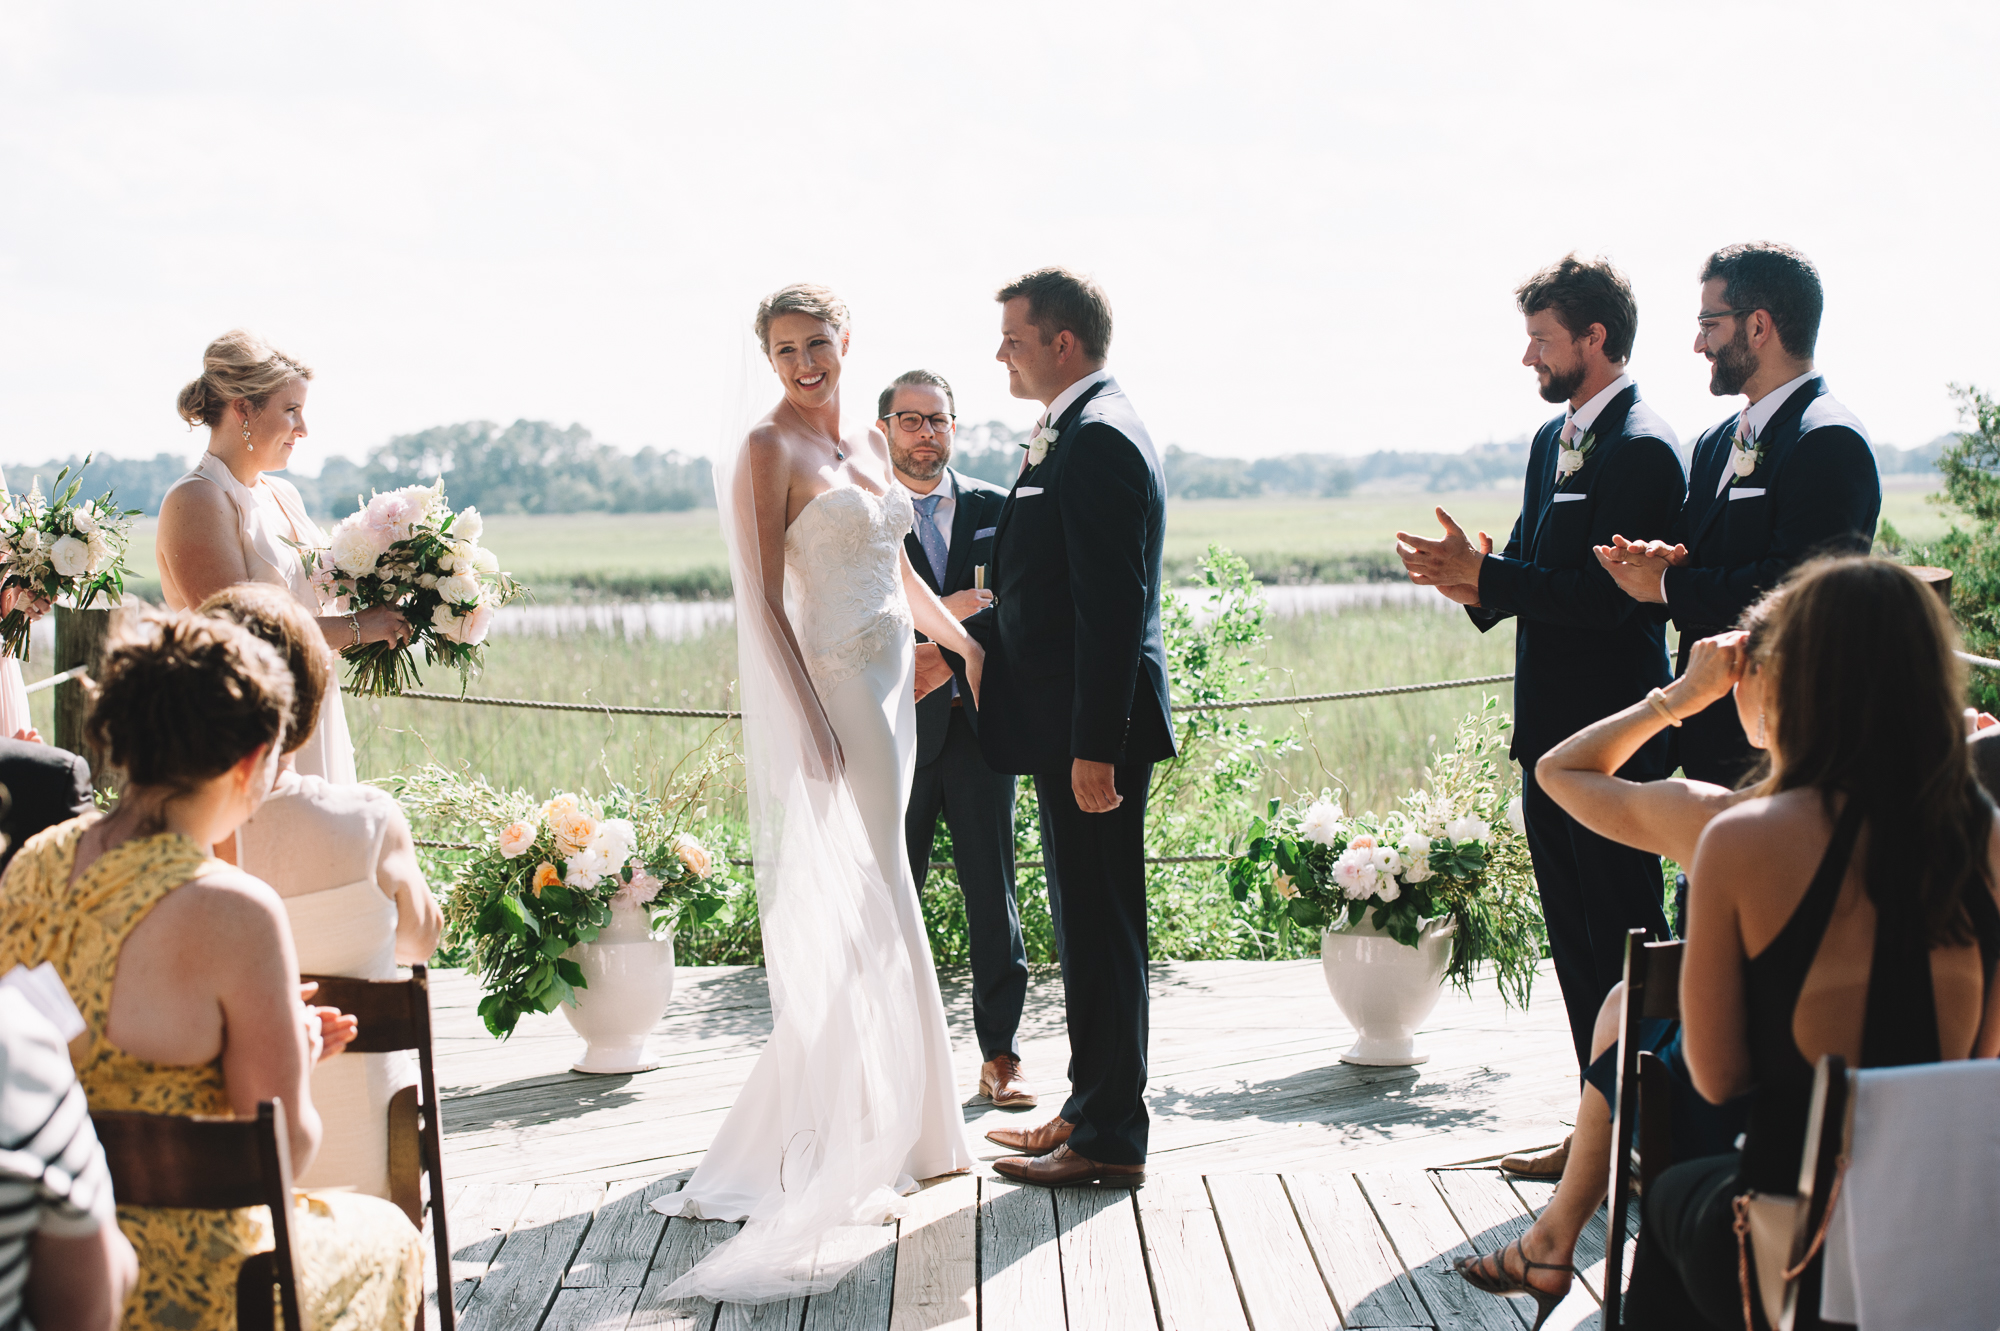 Jenny + Steve's Rustic Vintage Wedding - Jennings King Photography